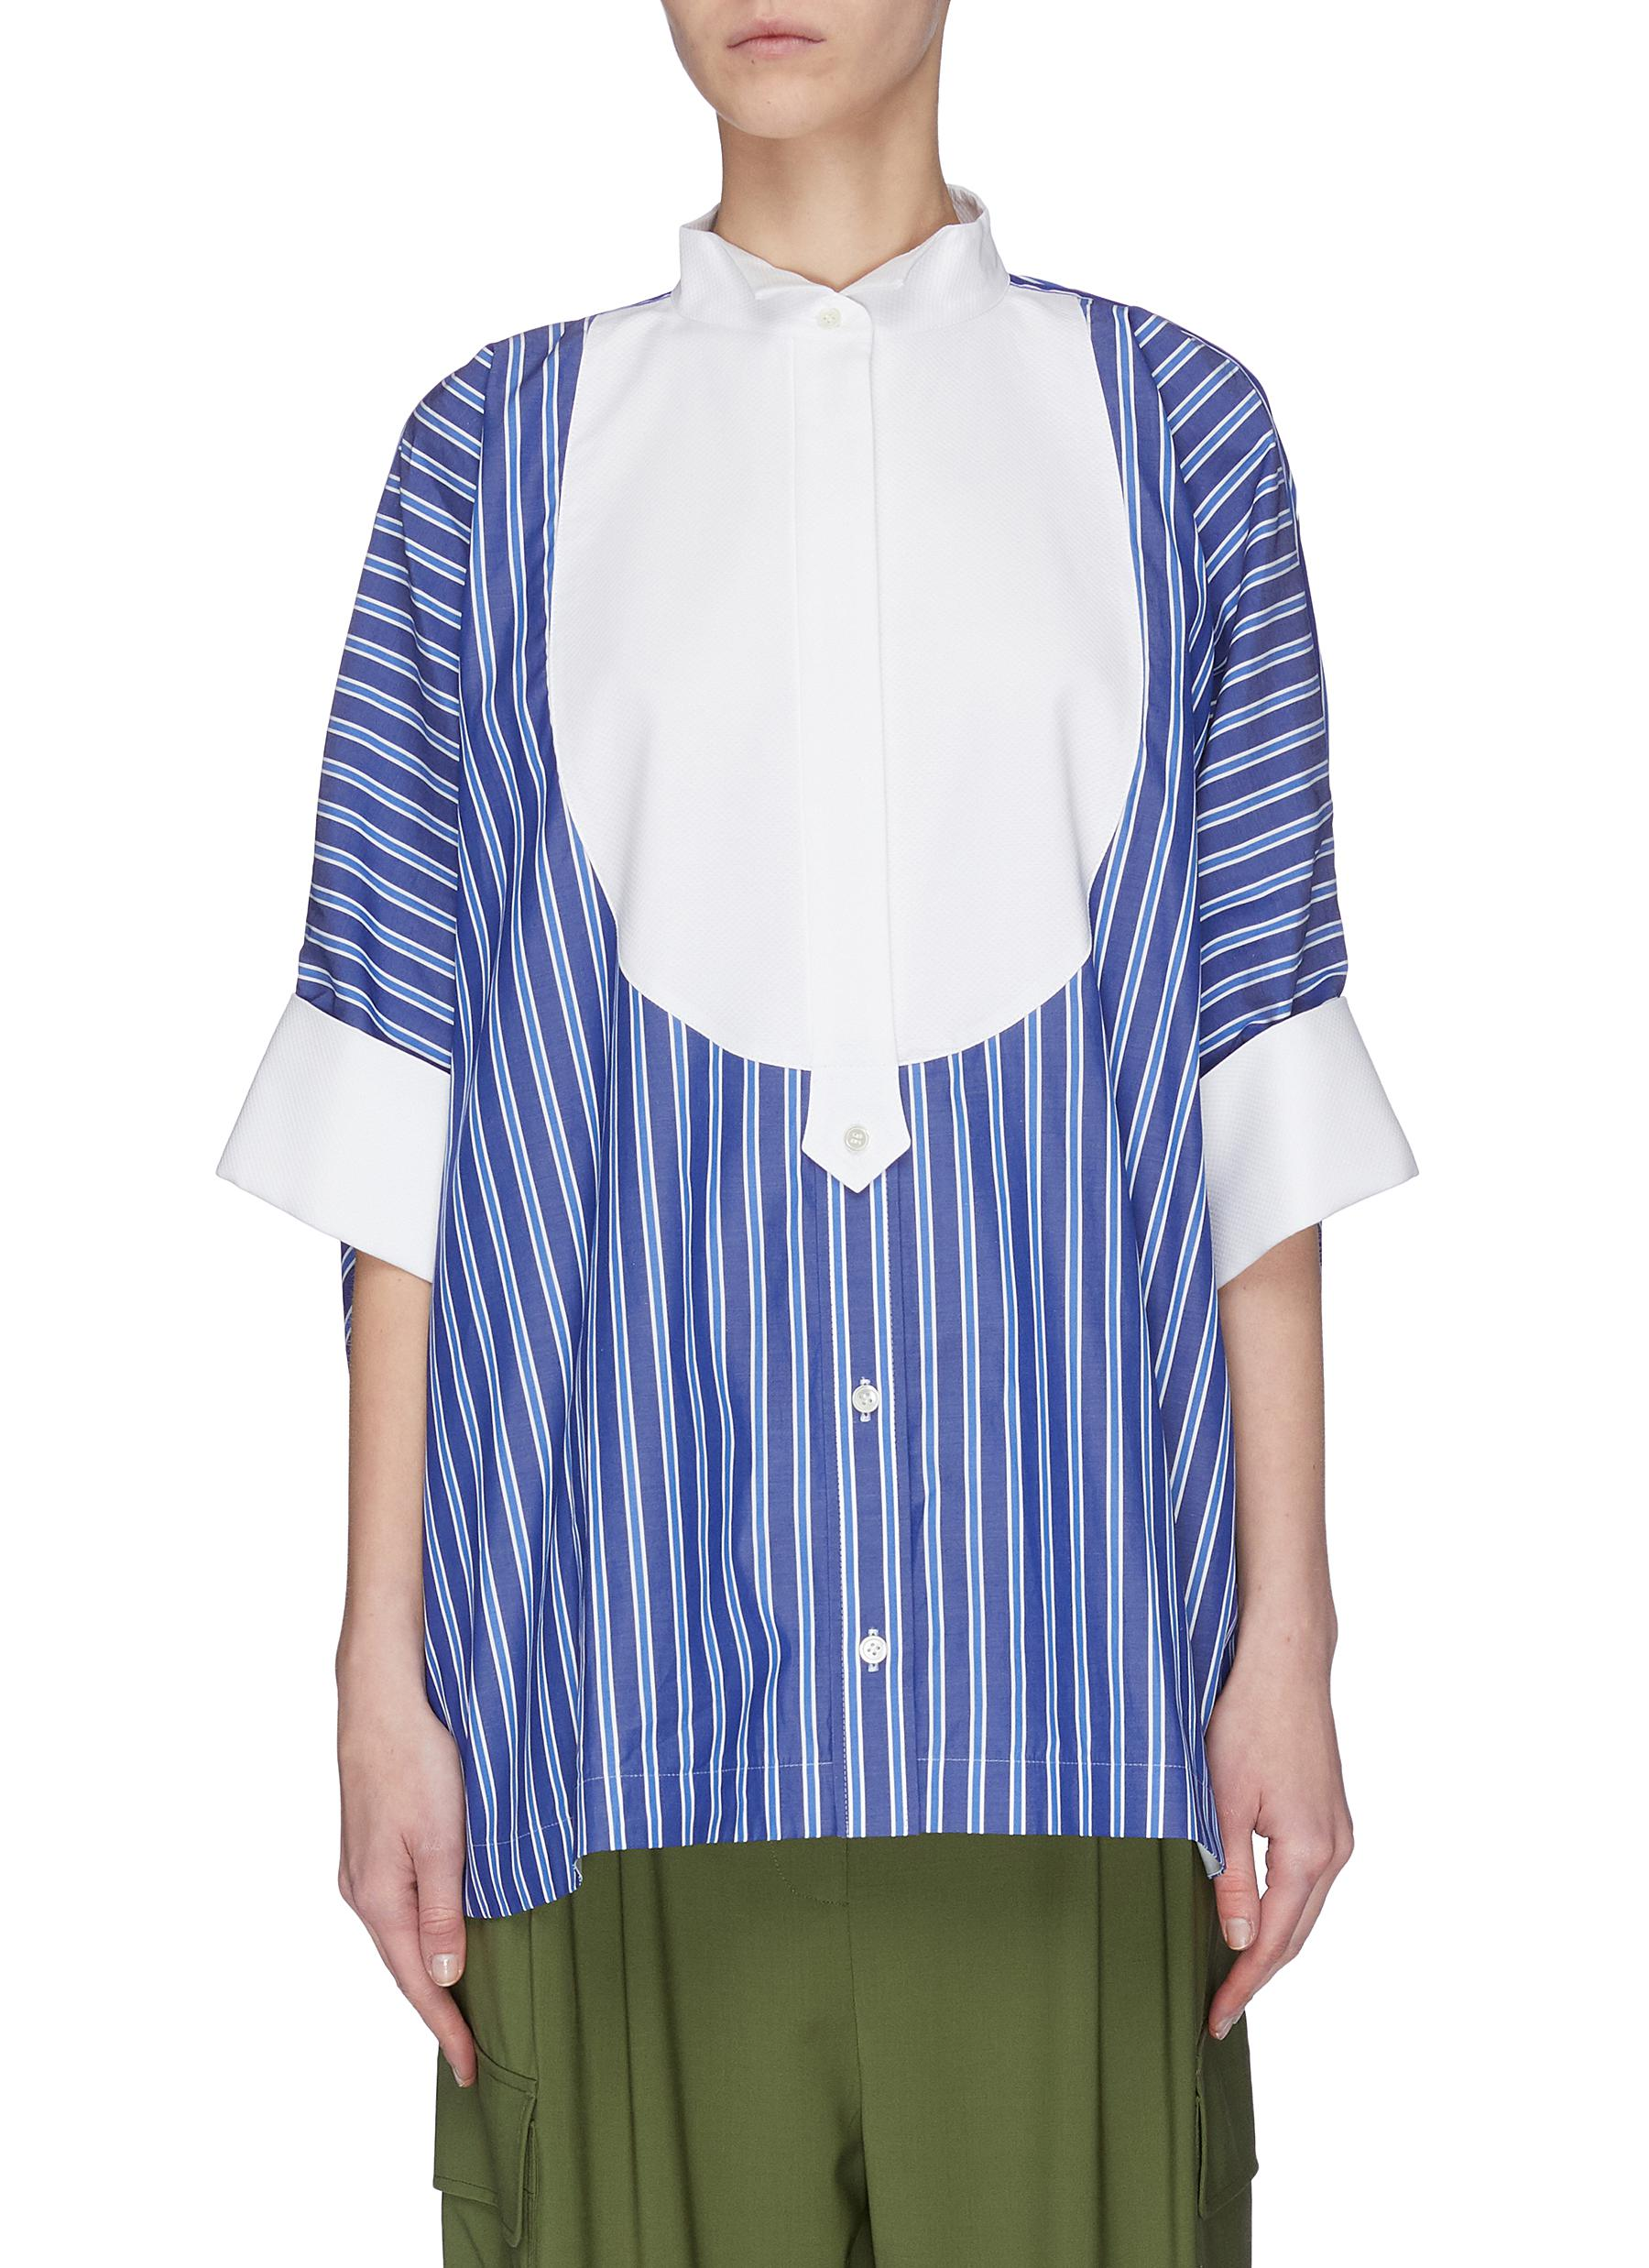 Buy Sacai Tops 'Bowtie' oversized stripe shirt